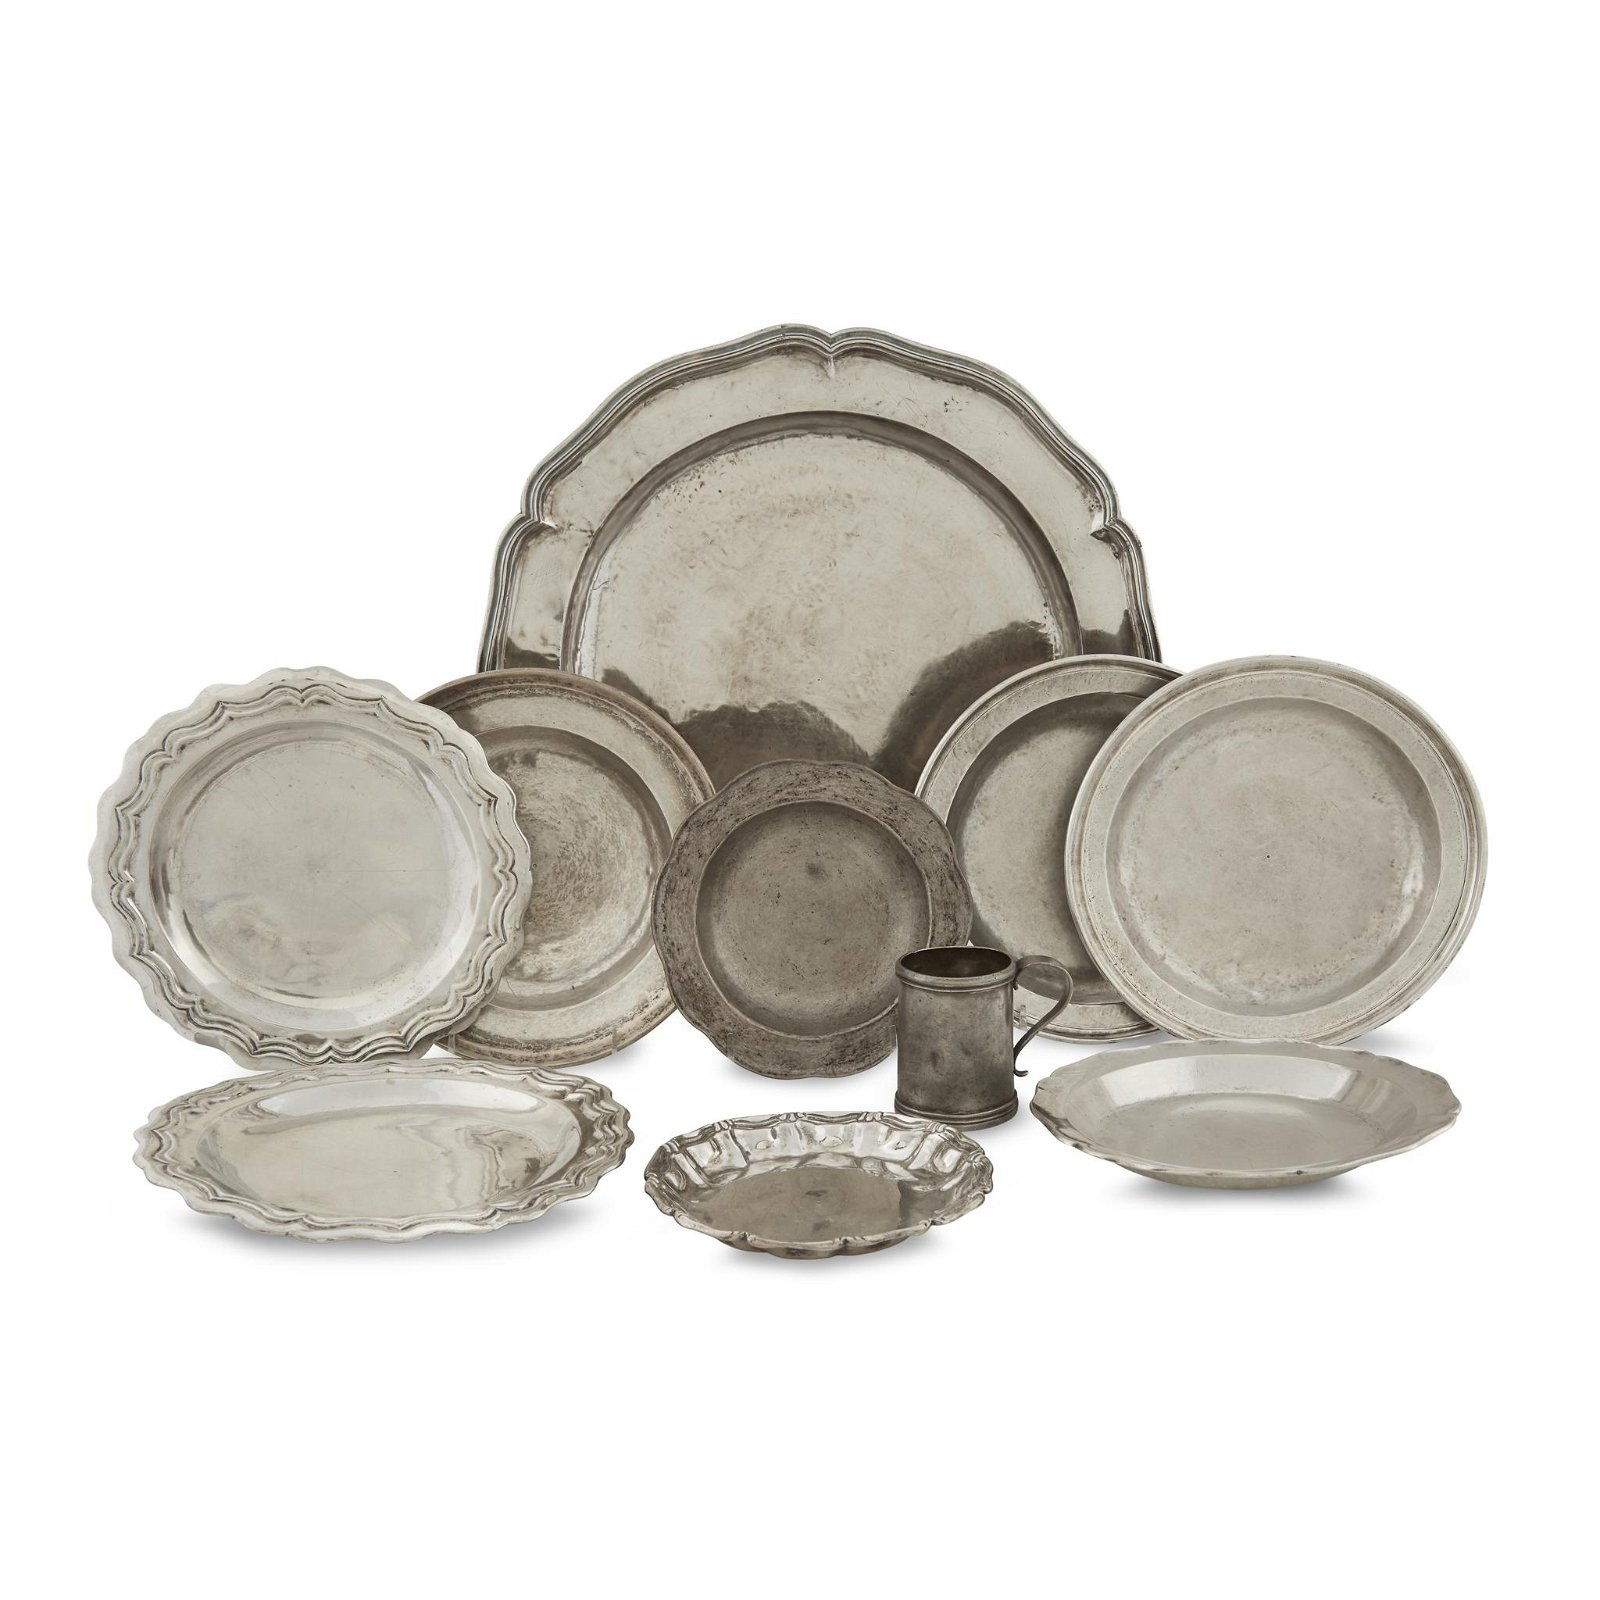 Group of ten Spanish Colonial silver and pewter